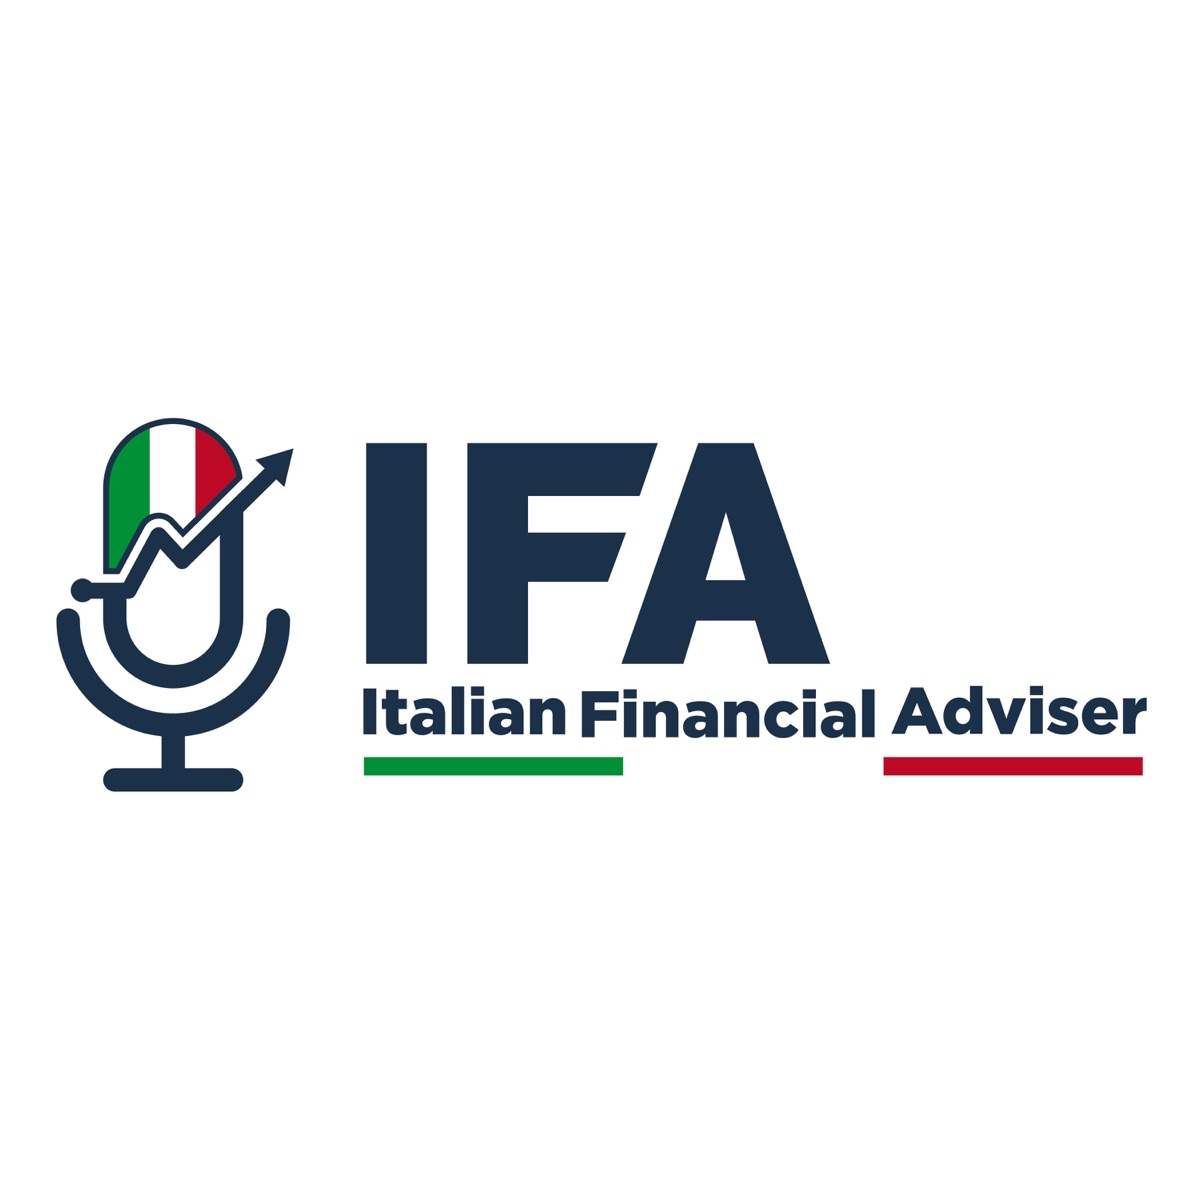 Italian Financial Adviser